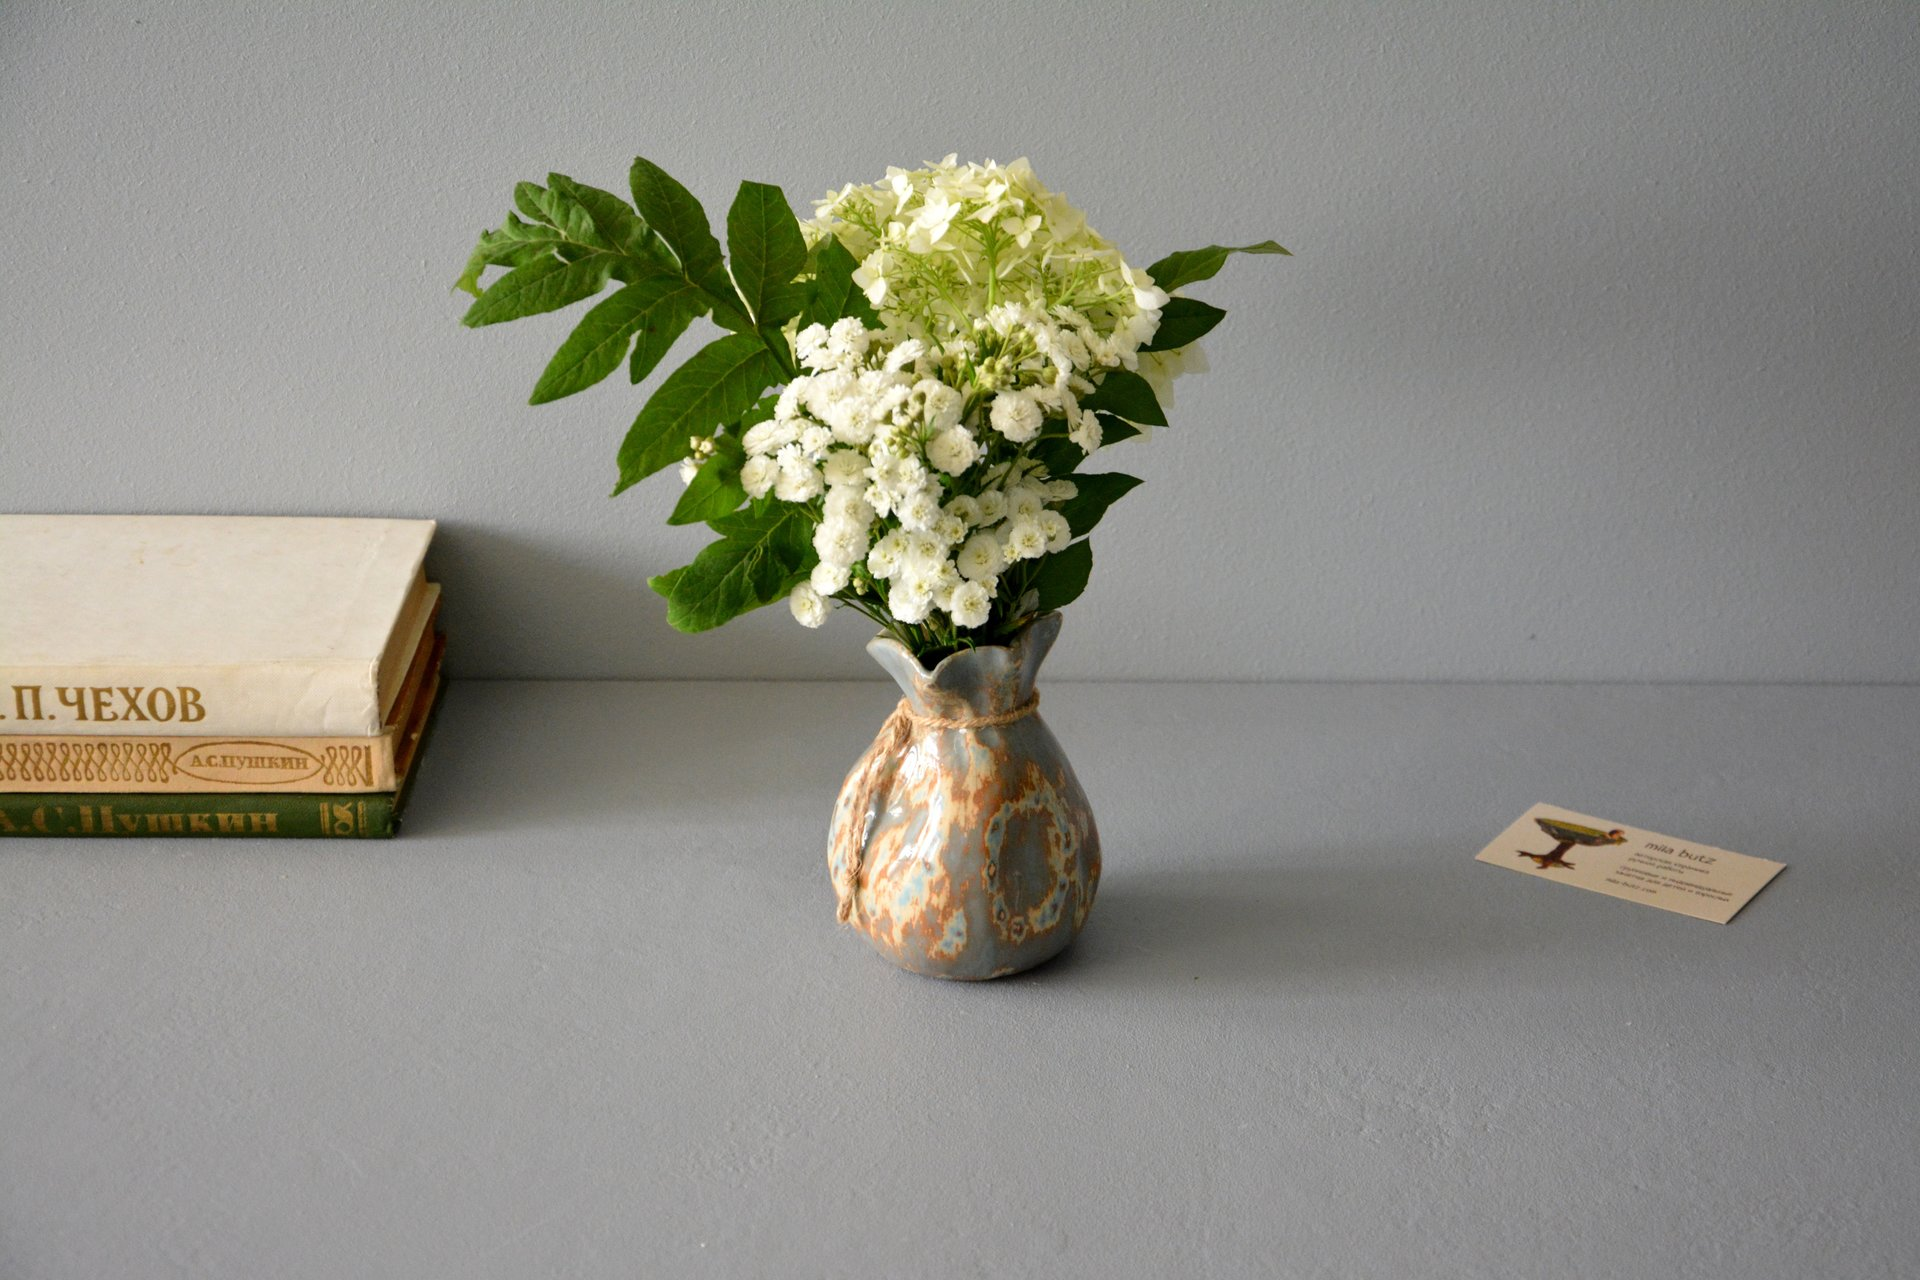 Small Vase or flowers «Gray-blue bagful», height - 12 cm, color - gray-blue. Photo 1002.